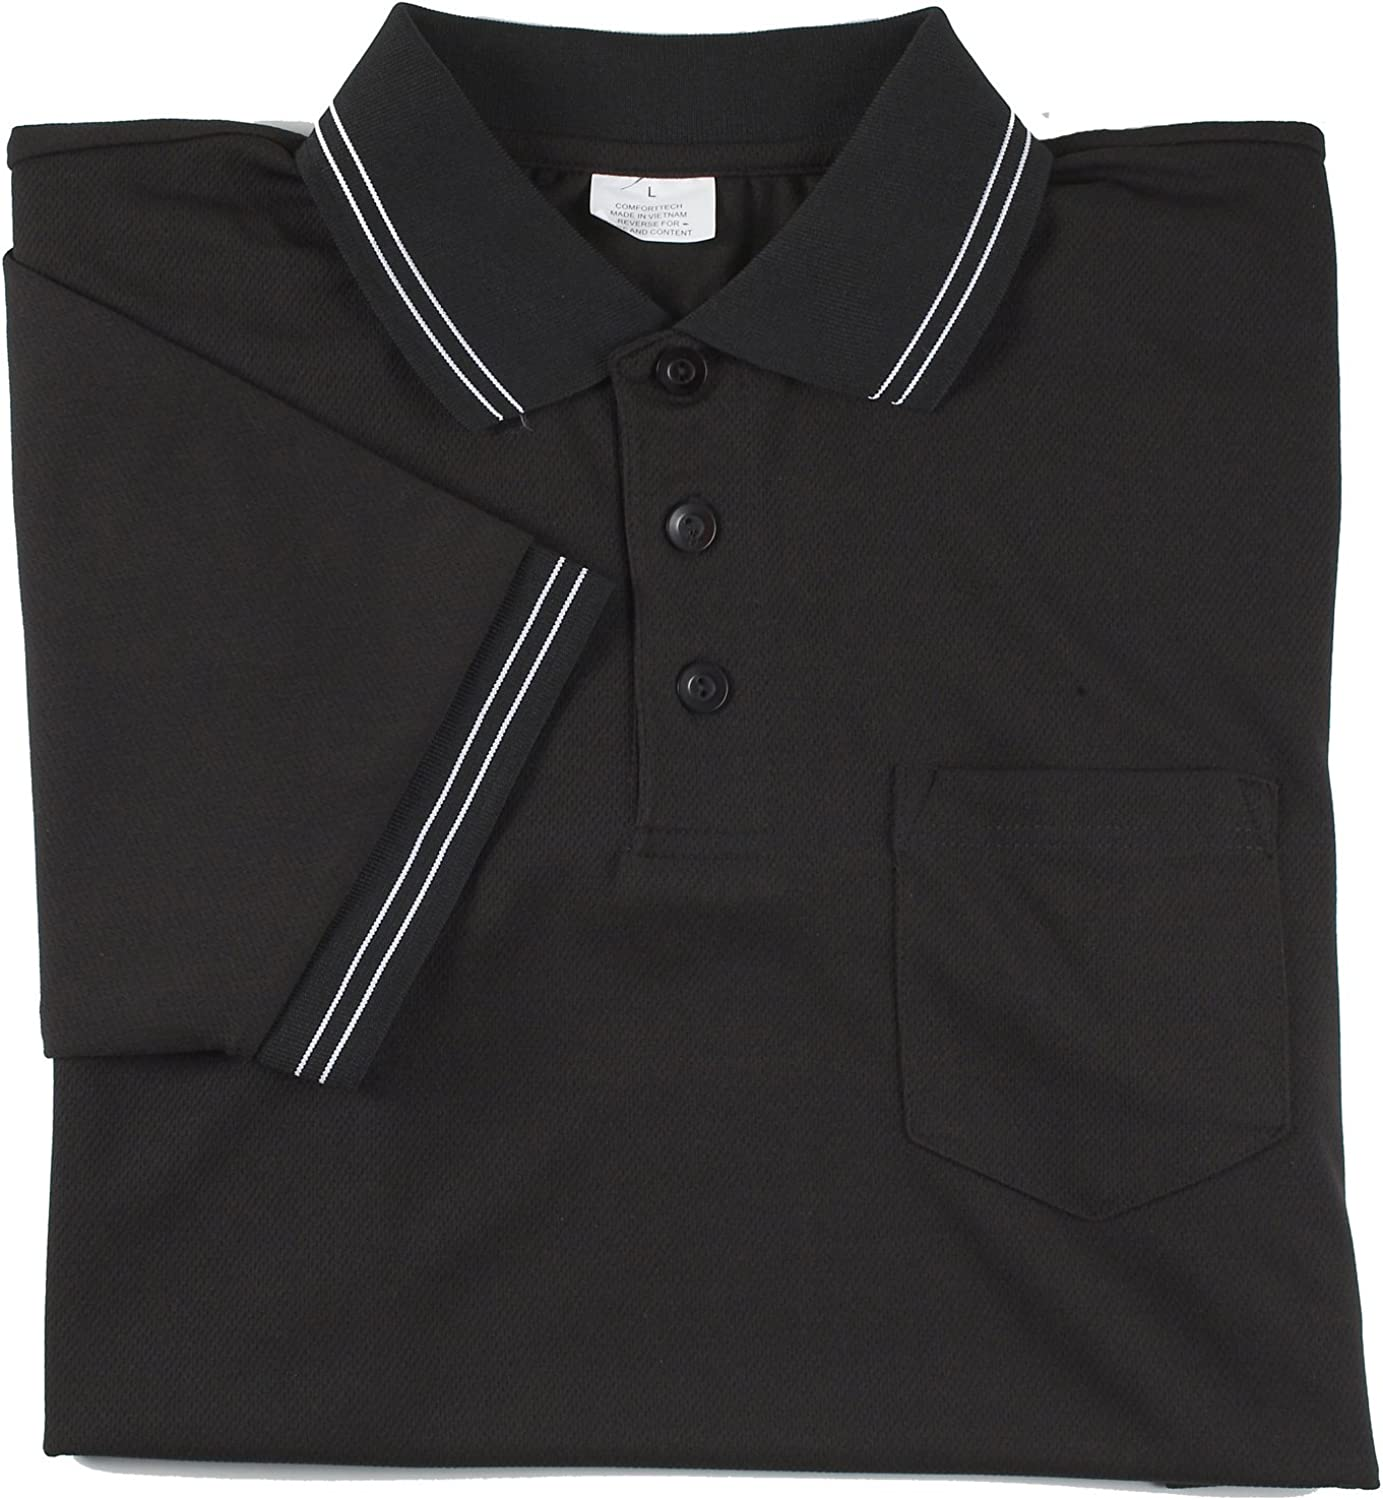 Black, XX-Large Adams USA Smitty Major League Style Short Sleeve Umpire Shirt with Front Chest Pocket